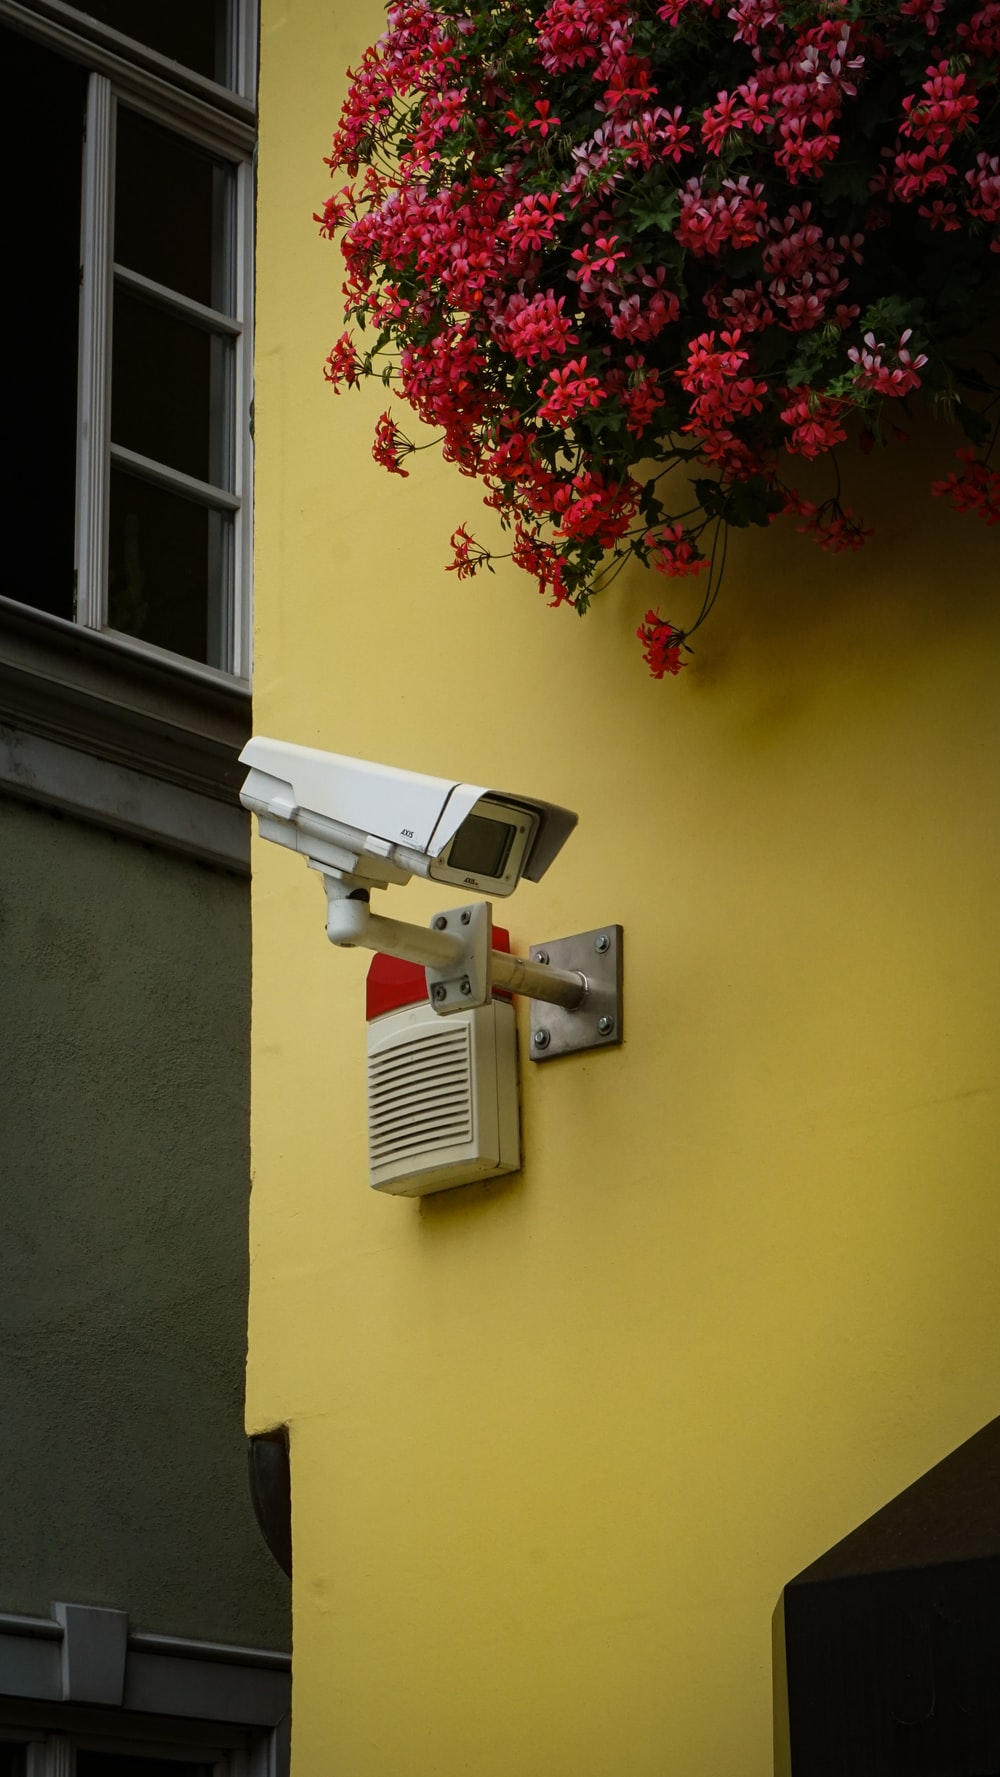 white and gray security camera mounted on yellow painted wall